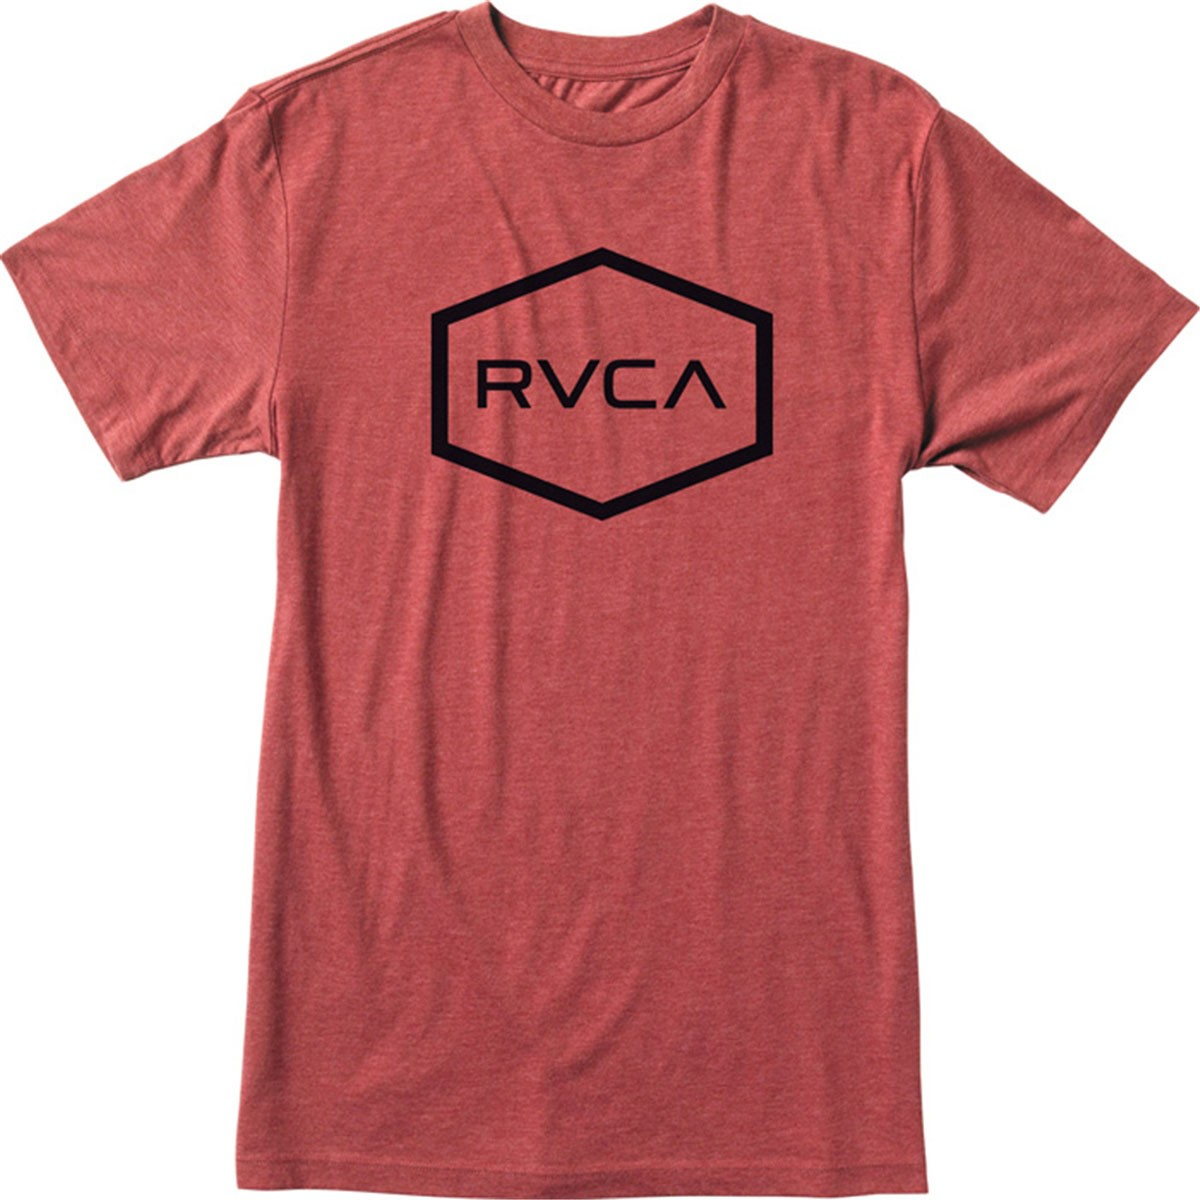 Rvca hexed youth t shirt brick red for Rvca t shirt dress